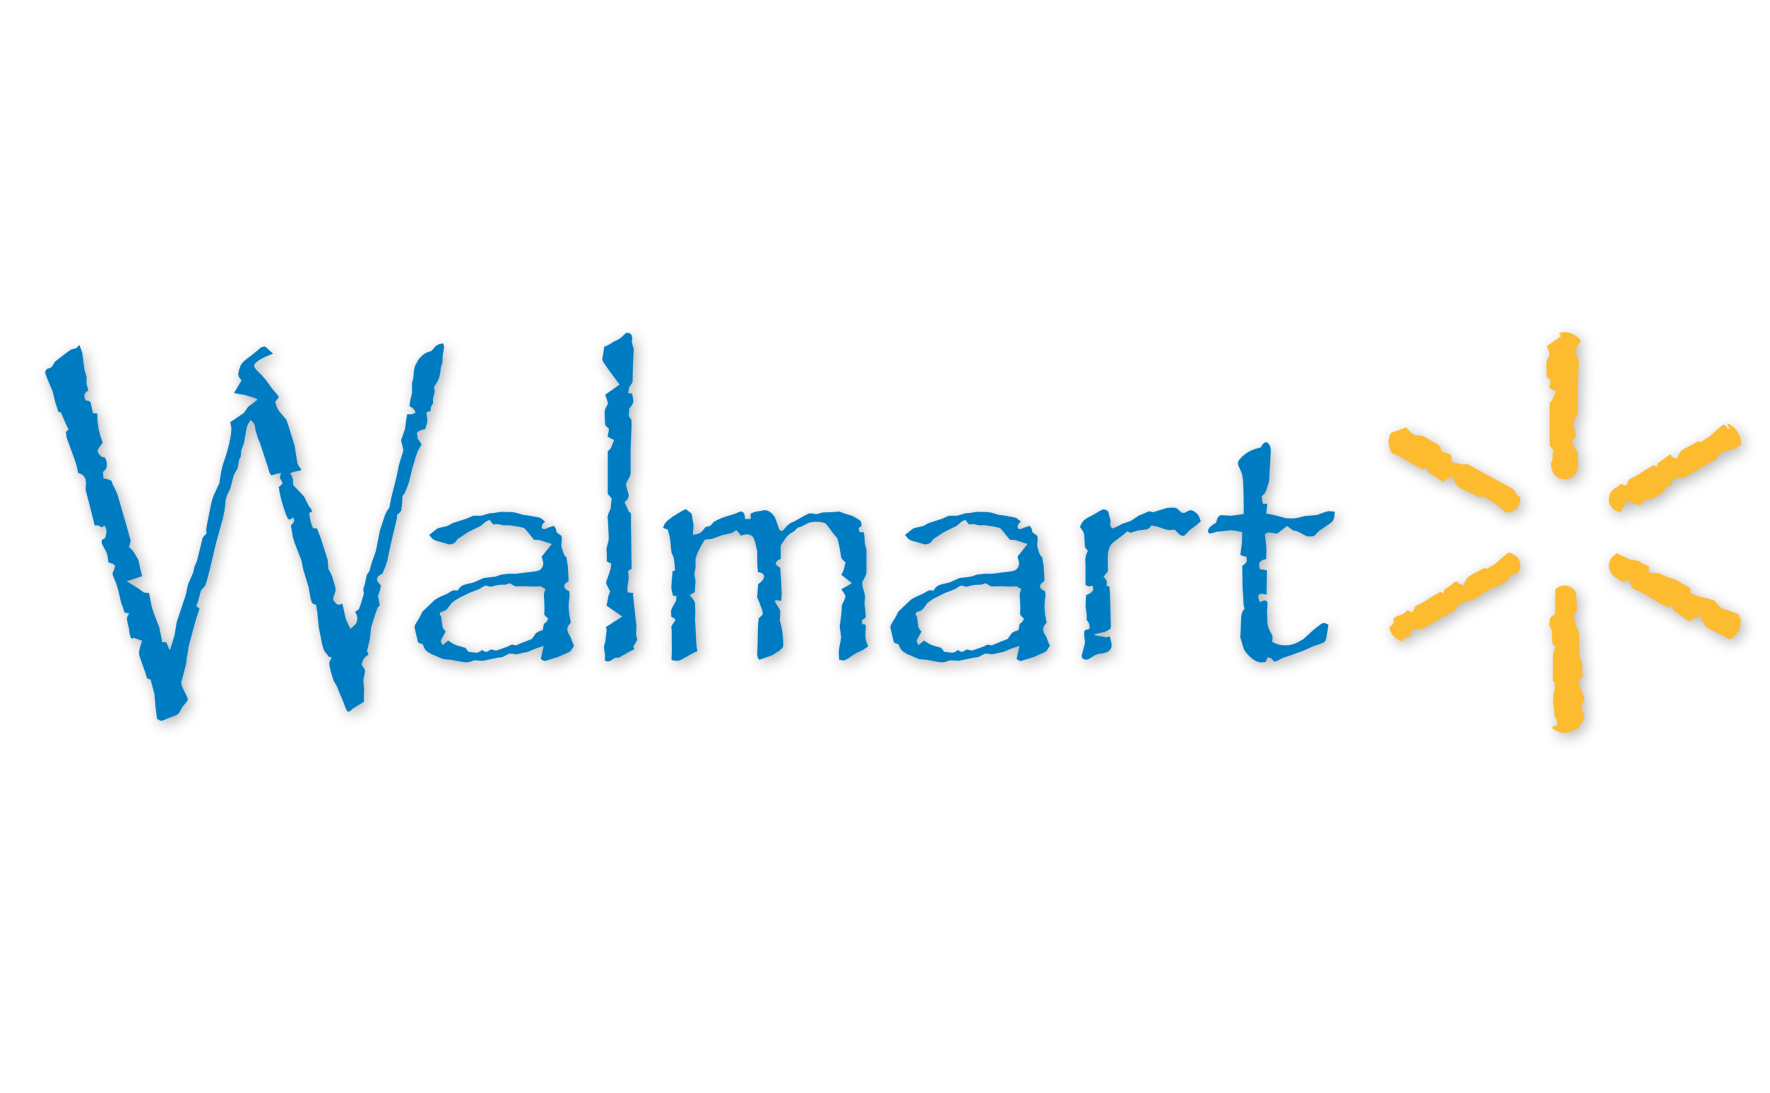 Walmart clipart money graphic library Walmart Logo Transparent PNG Pictures - Free Icons and PNG Backgrounds graphic library